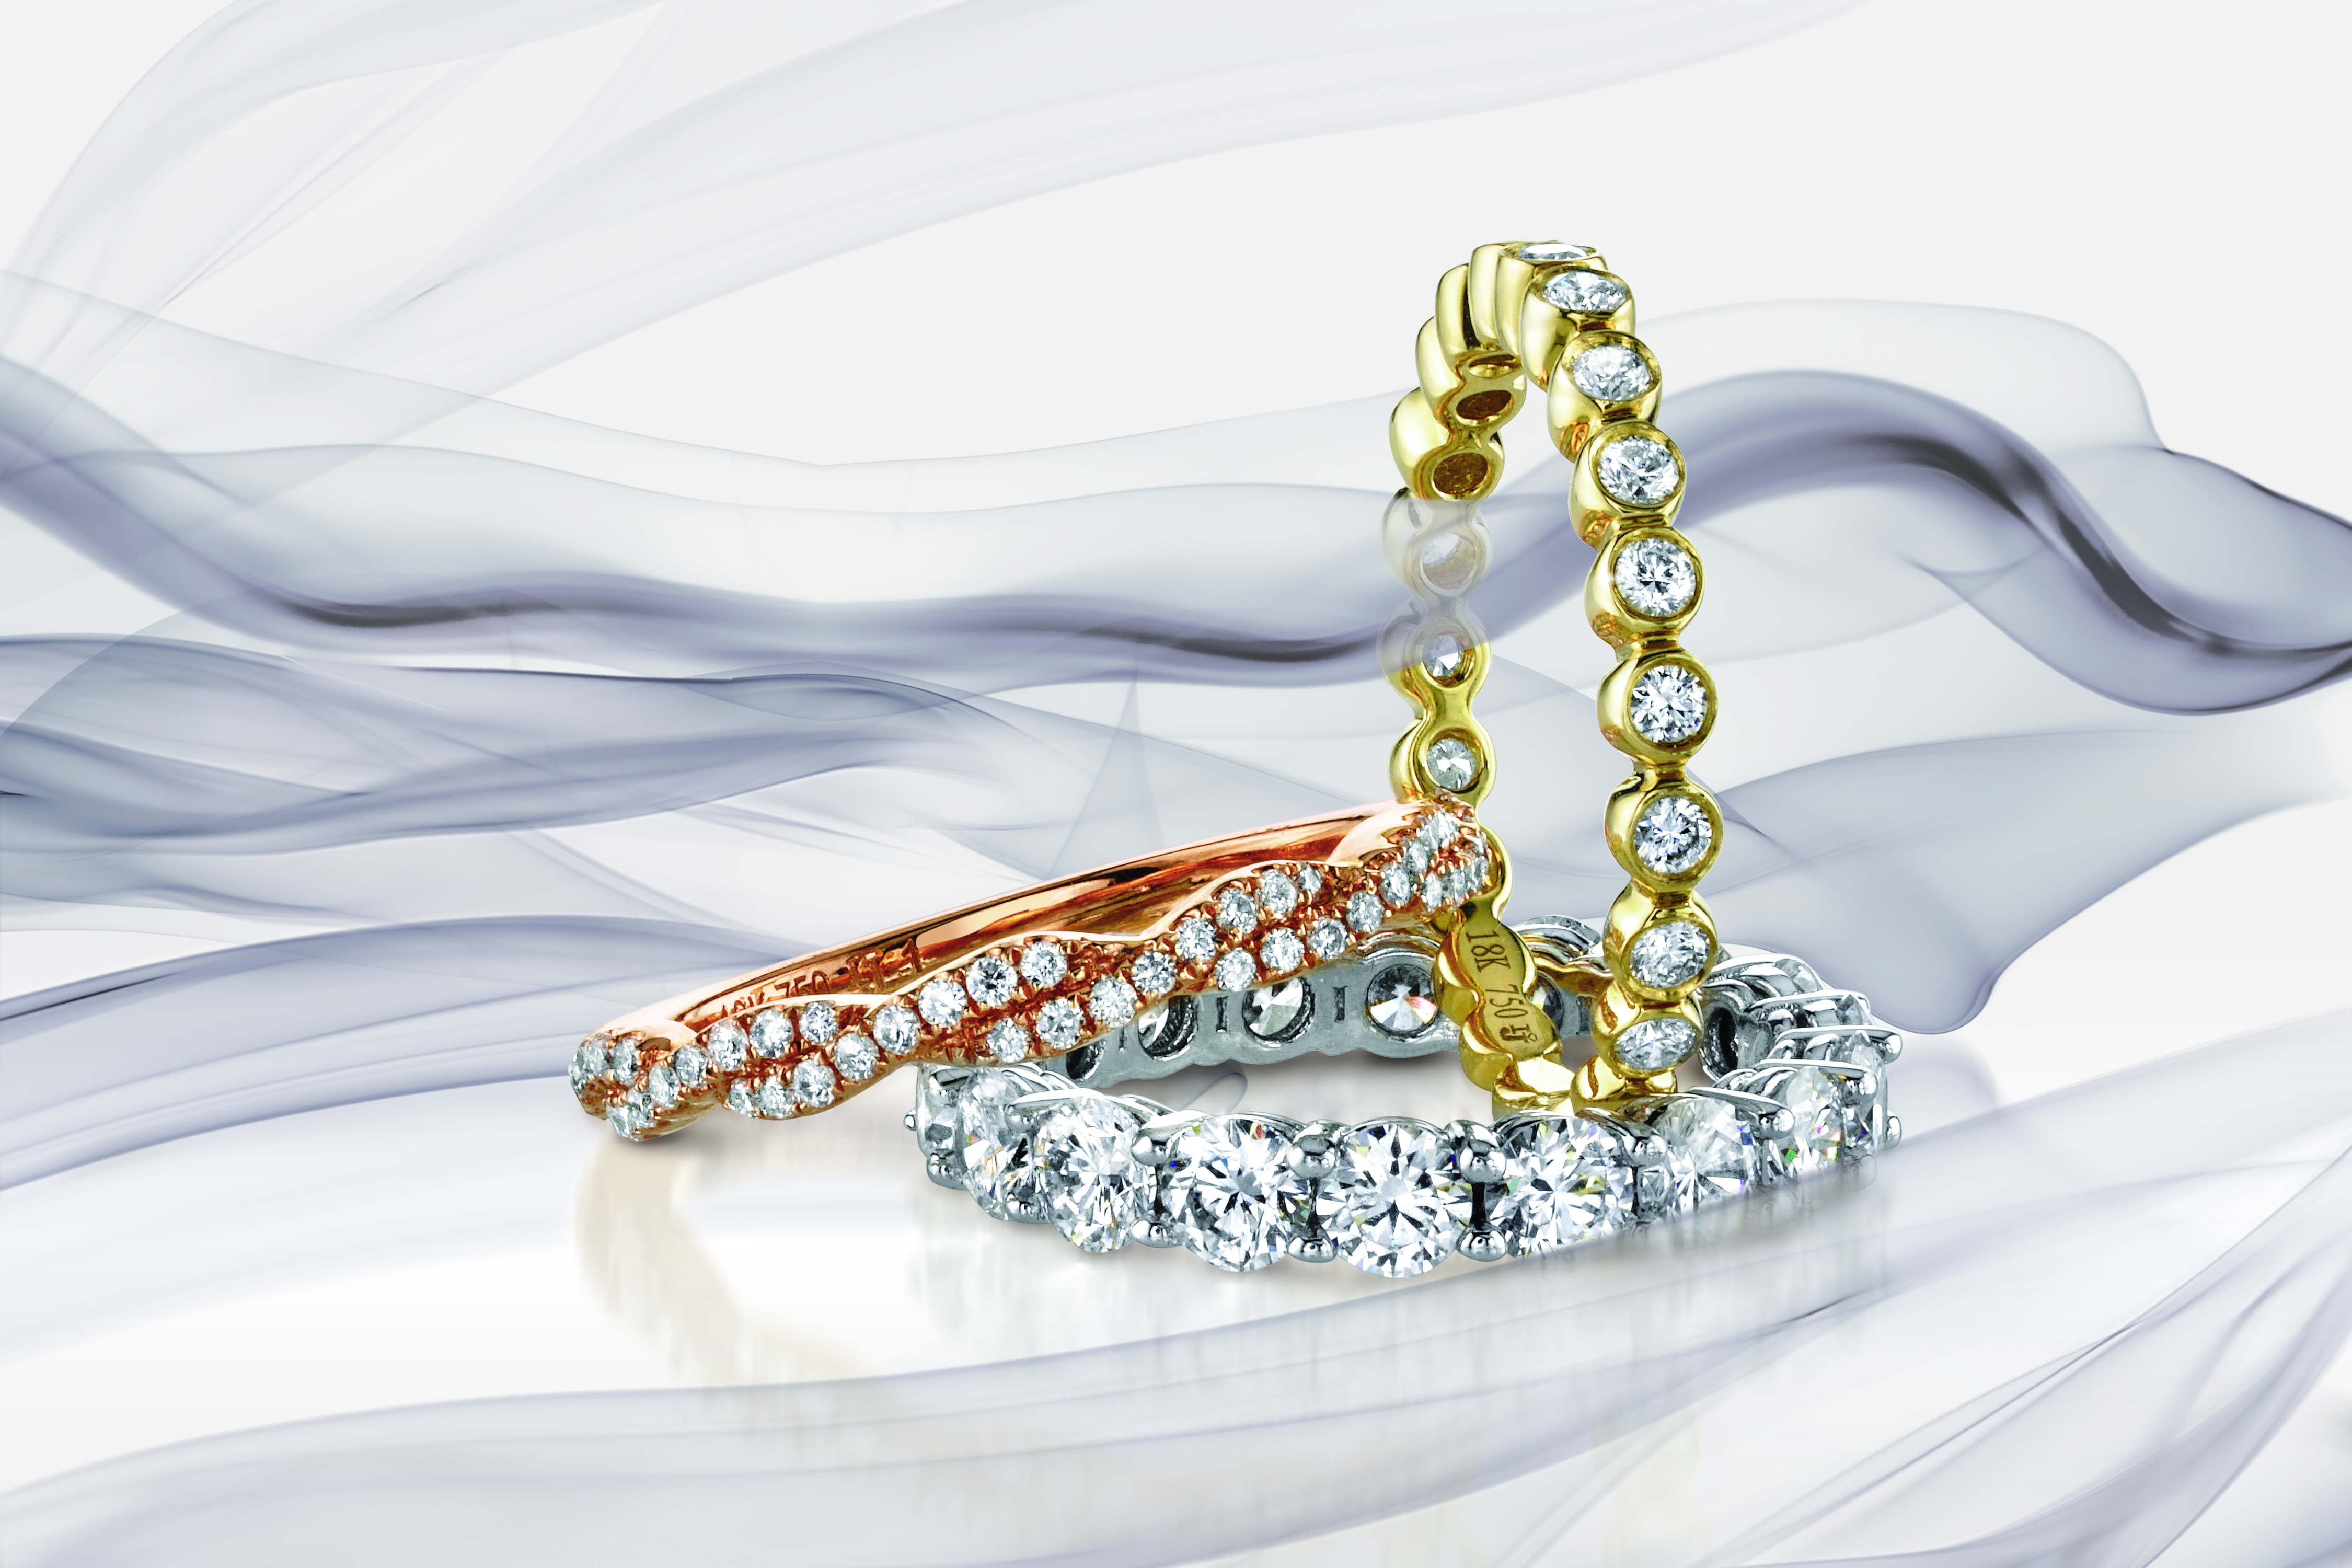 Wedding Band ad, Jewlery Ad, Beautiful Jewelry ad, creative jewelry ad